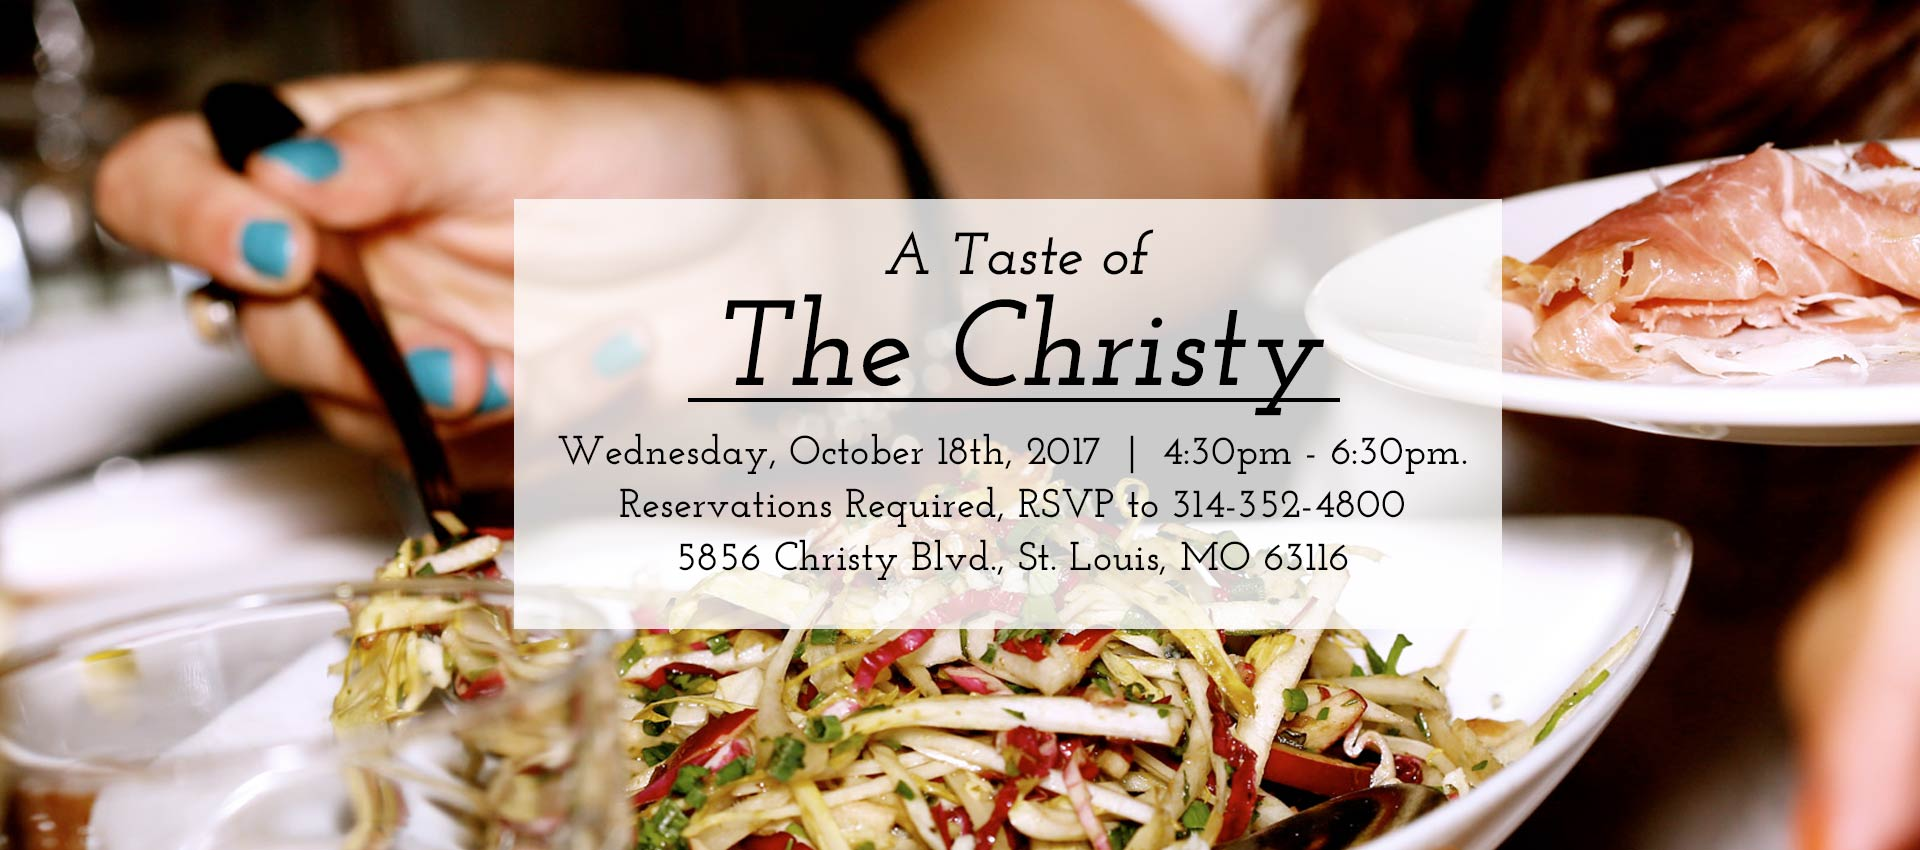 taste-of-christy-2017-oct-new1